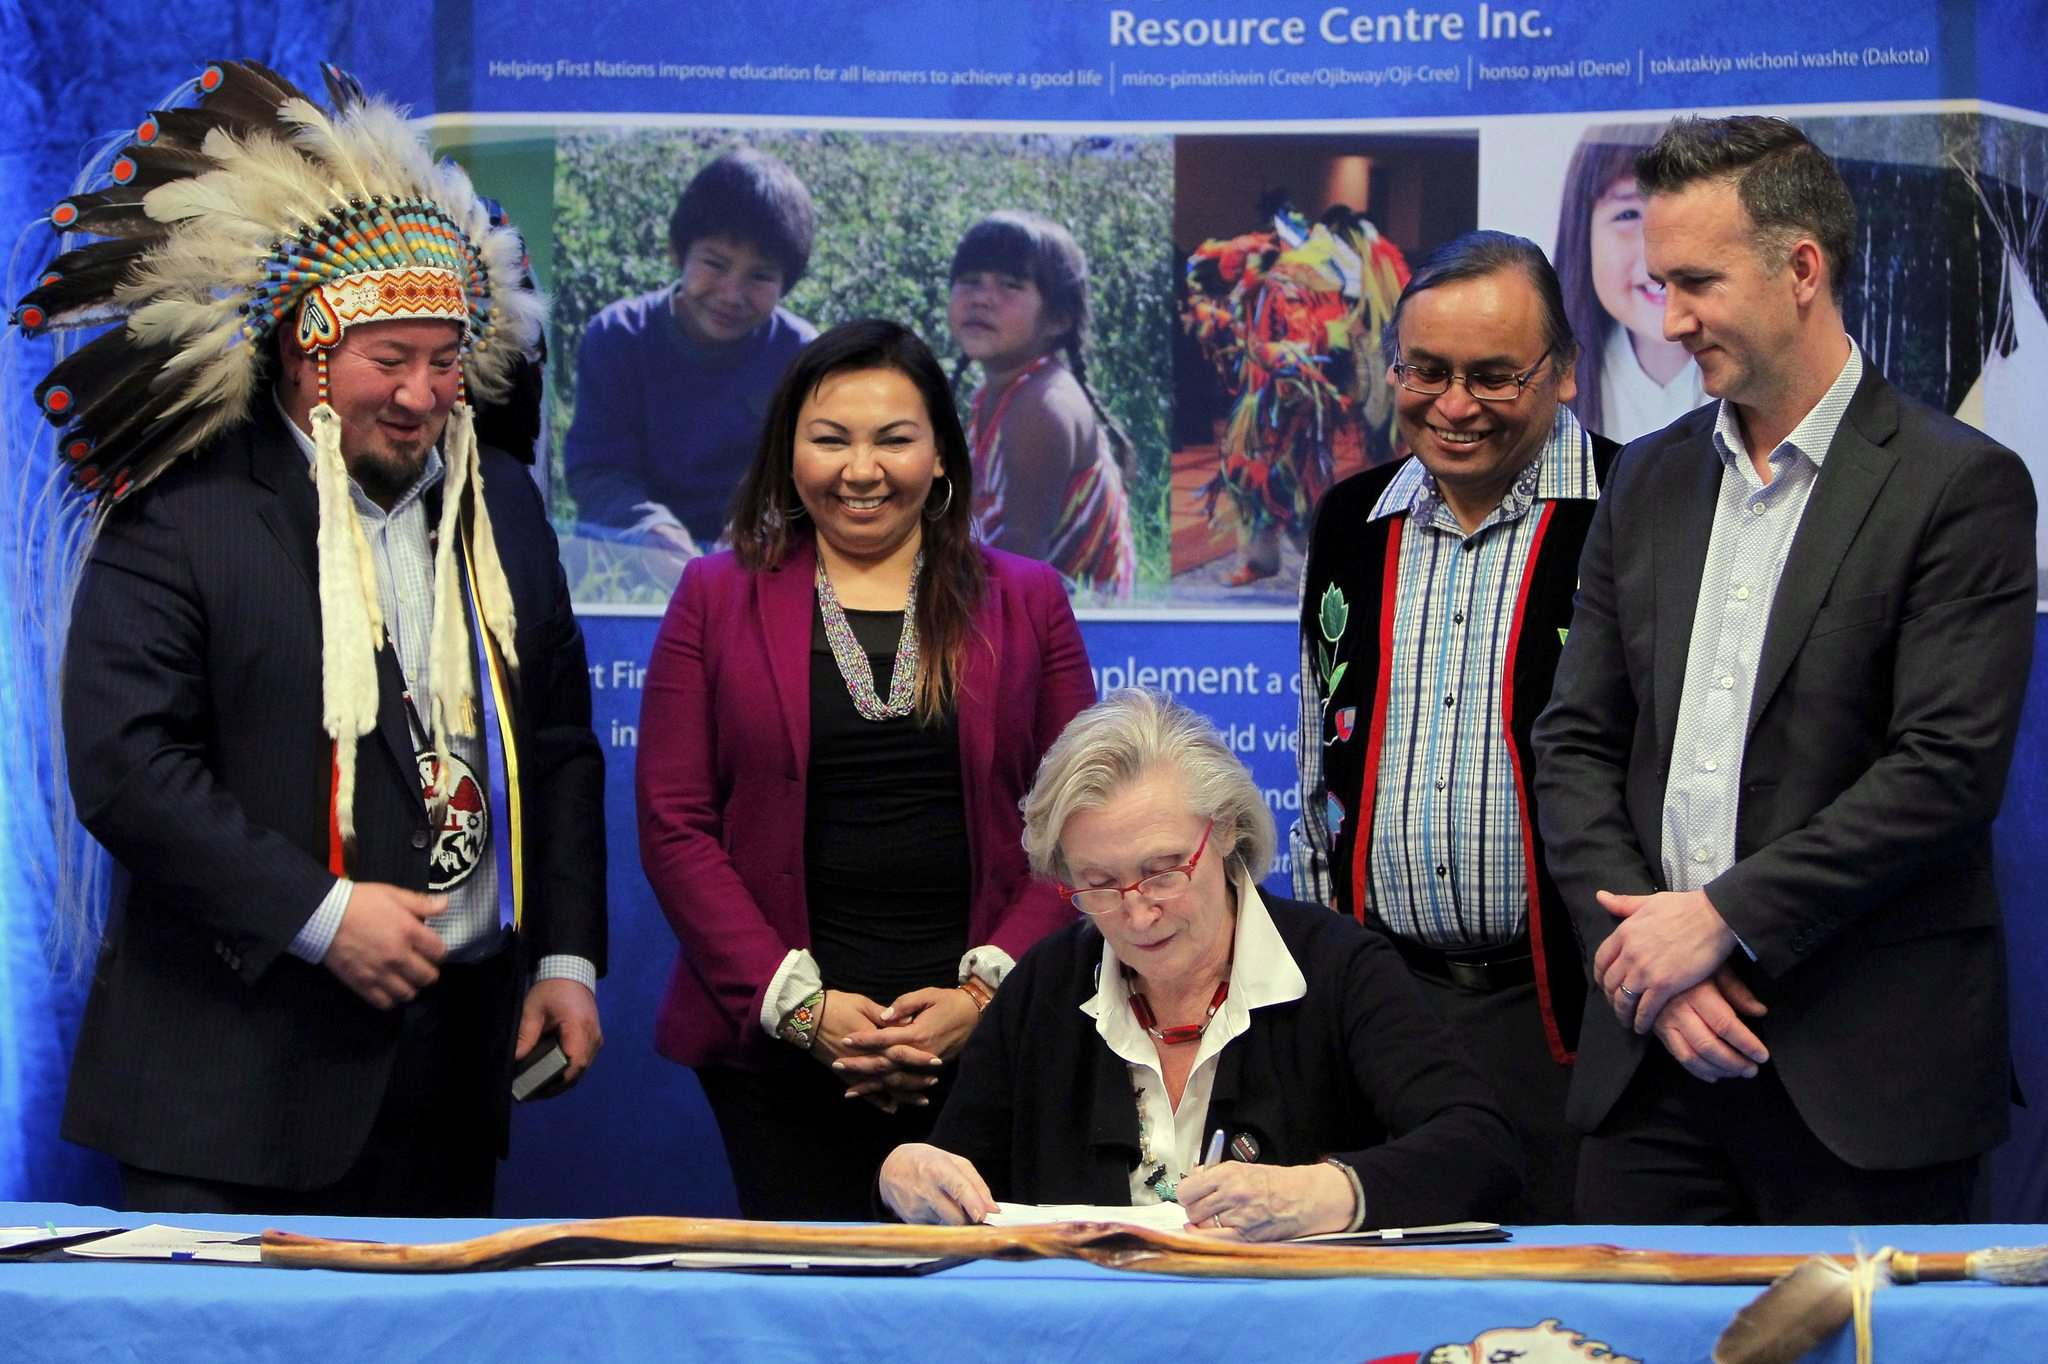 BORIS MINKEVICH / WINNIPEG FREE PRESS</p><p>Manitoba First Nations School System Education Governance Agreement Signing Ceremony at the Victoria Inn & Conference Centre. Left to right: Assembly of Manitoba Chiefs Grand Chief Derek Nepinak, Manitoba Keewatinowi Okimakanak Inc. Grand Chief Sheila North Wilson, The Honourable Carolyn Bennett, Minister of Indigenous and Northern Affairs, Southern Chief's Organization Inc. Grand Chief Terrance Nelson, and federal official Derek Bradley.</p>